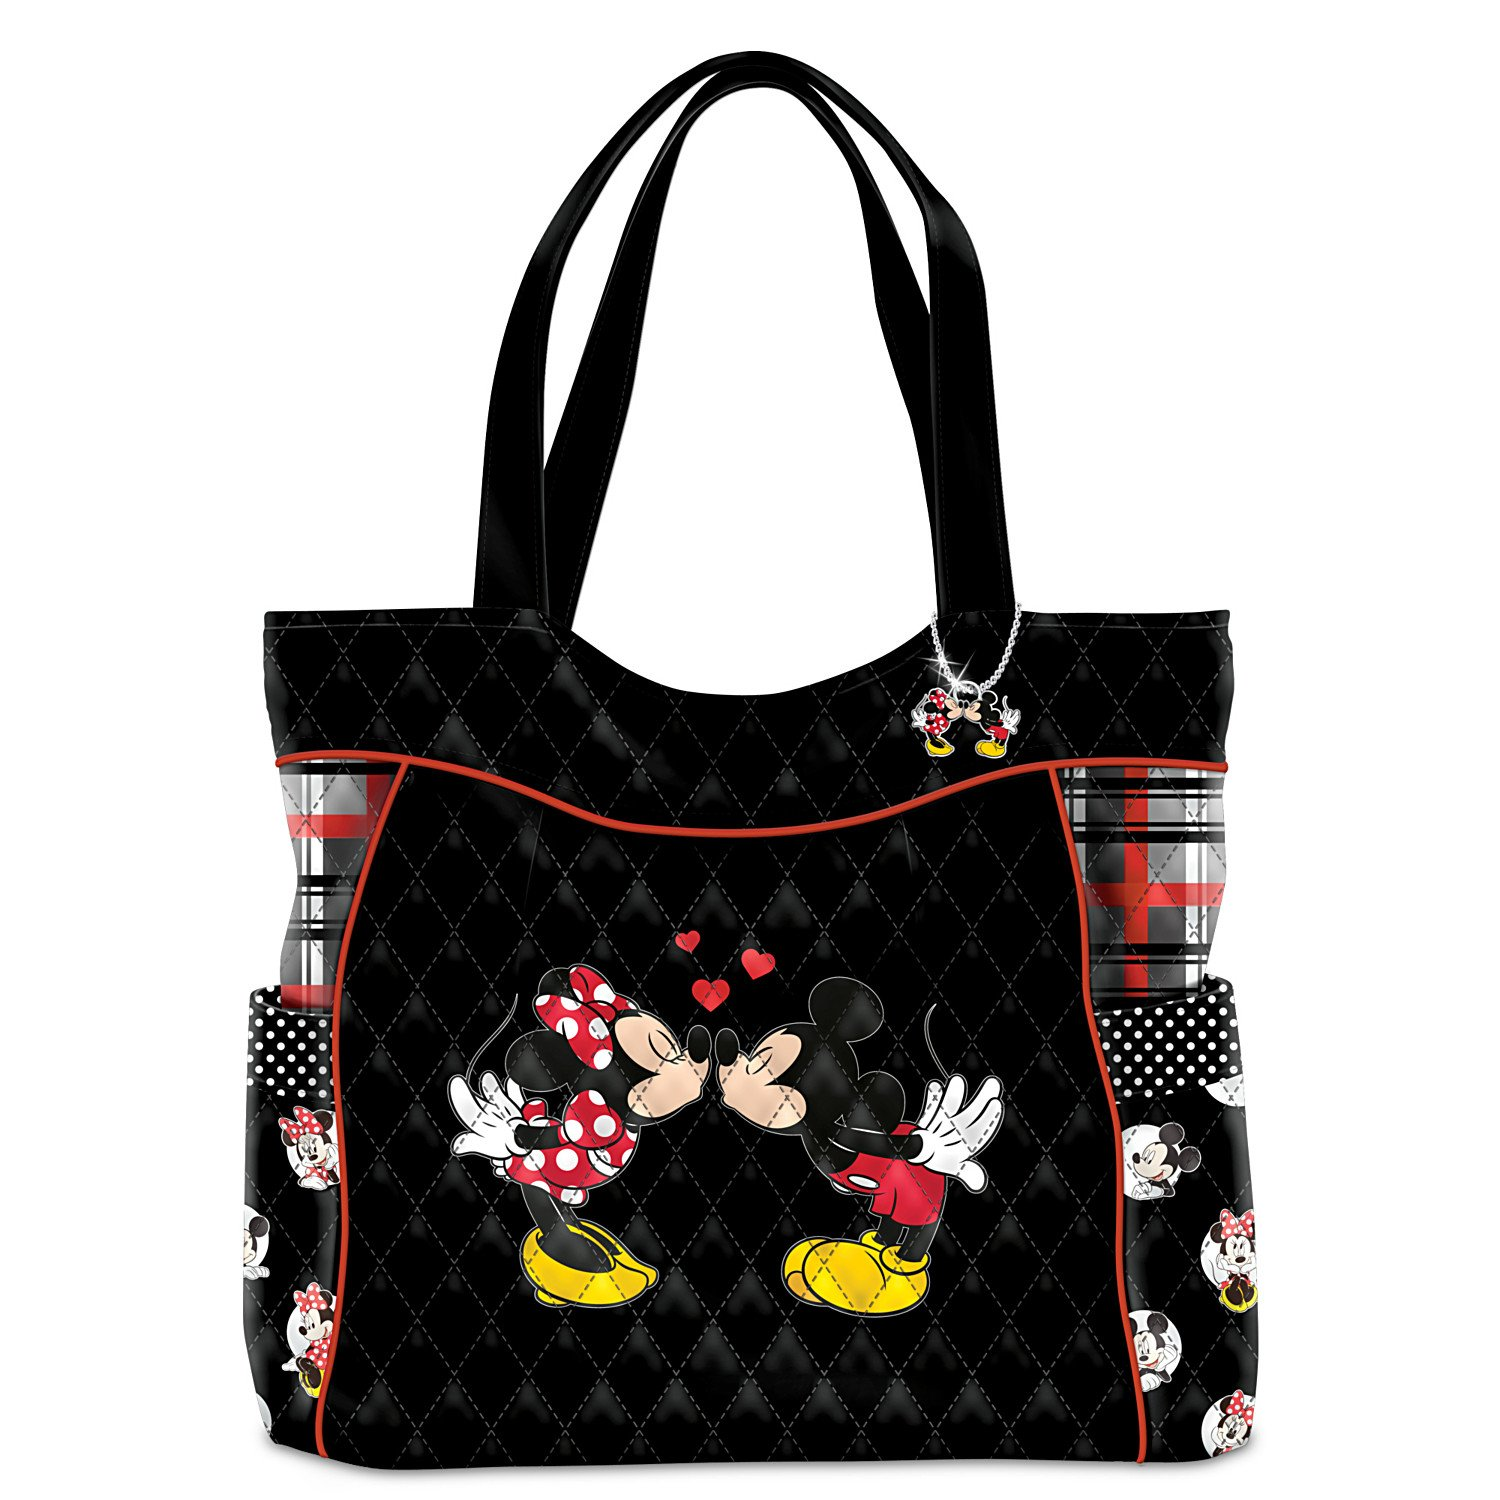 Disney Mickey Mouse And Minnie Mouse Love Story Women's Quilted Tote Bag by The Bradford Exchange